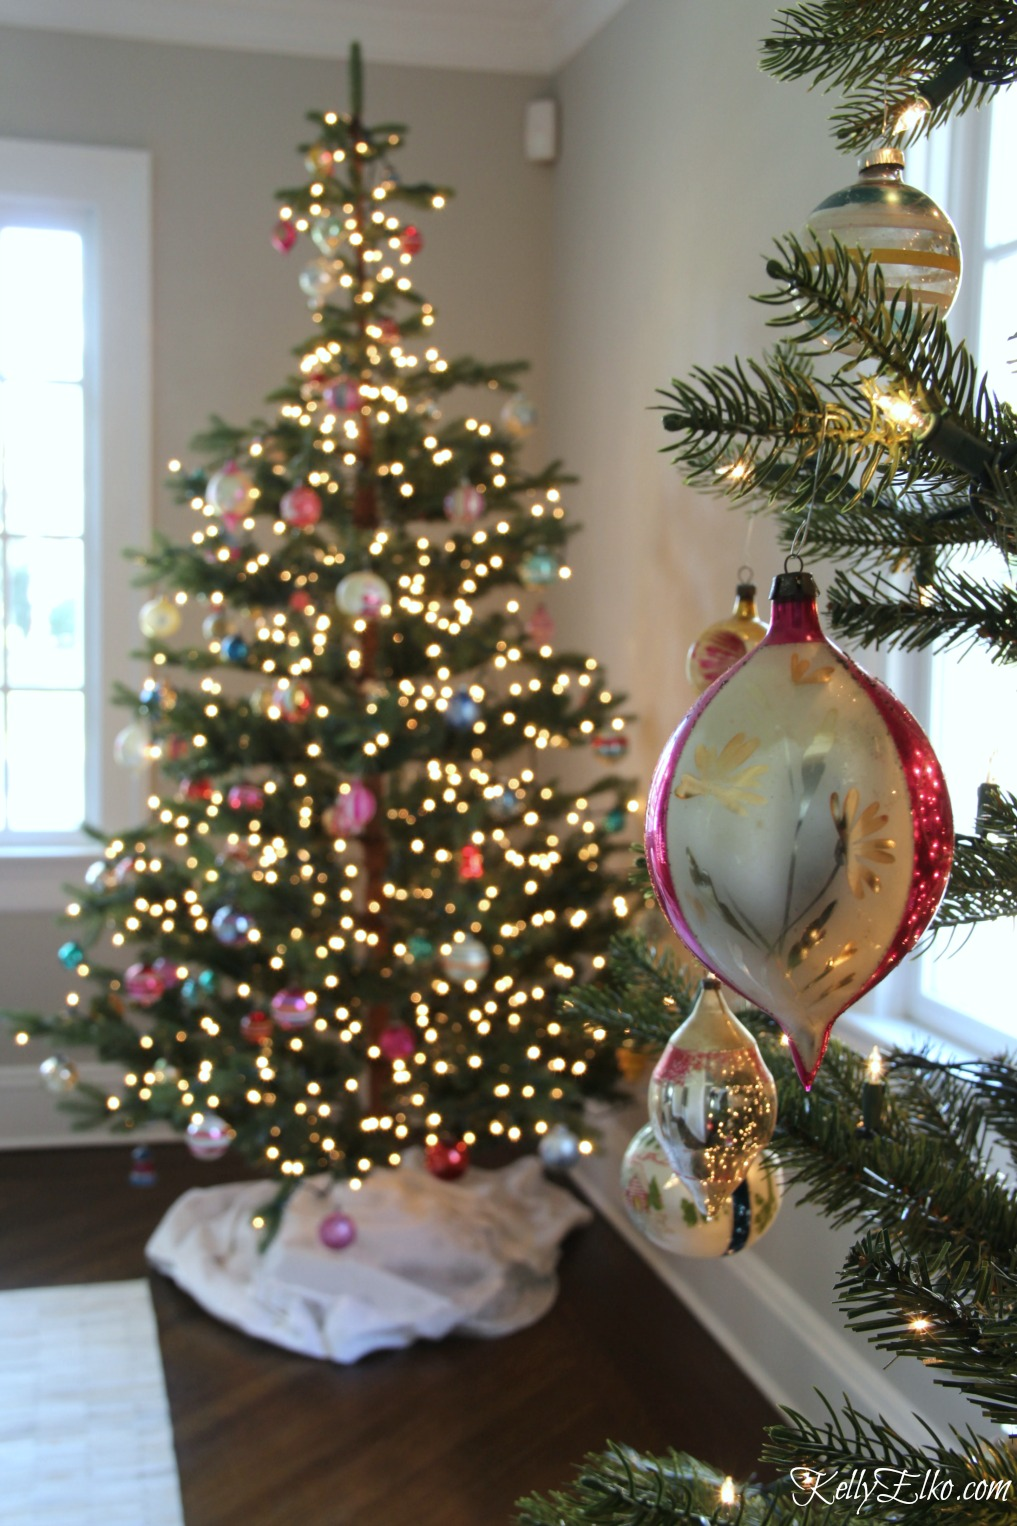 Sparse branches of this faux fir Christmas tree is perfect for showing off ornaments kellyelko.com